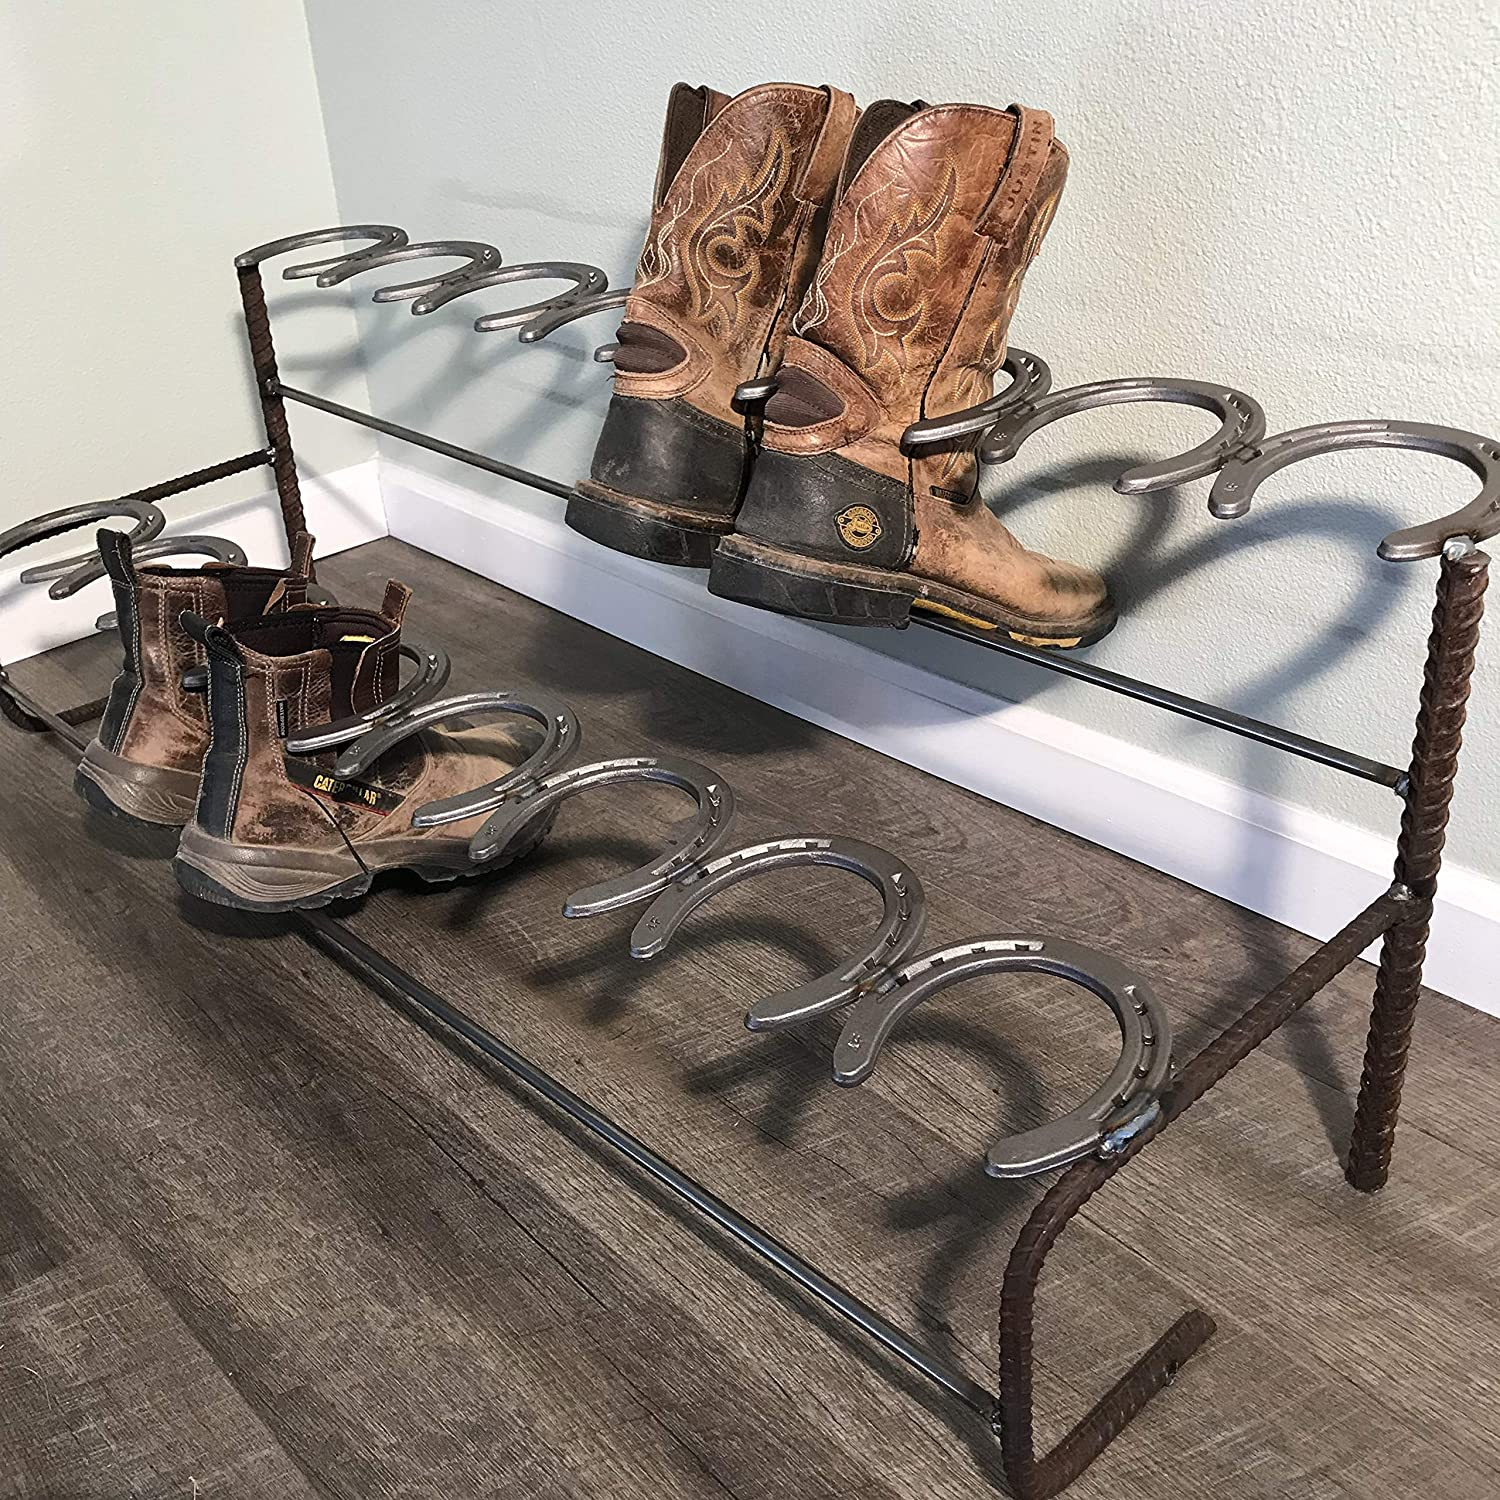 The Heritage Forge Rustic Boot Rack Storage Made Of Horseshoes Perfect For Organizing Boots Entryways And Storage Double Decker 8 Pairs Home Kitchen